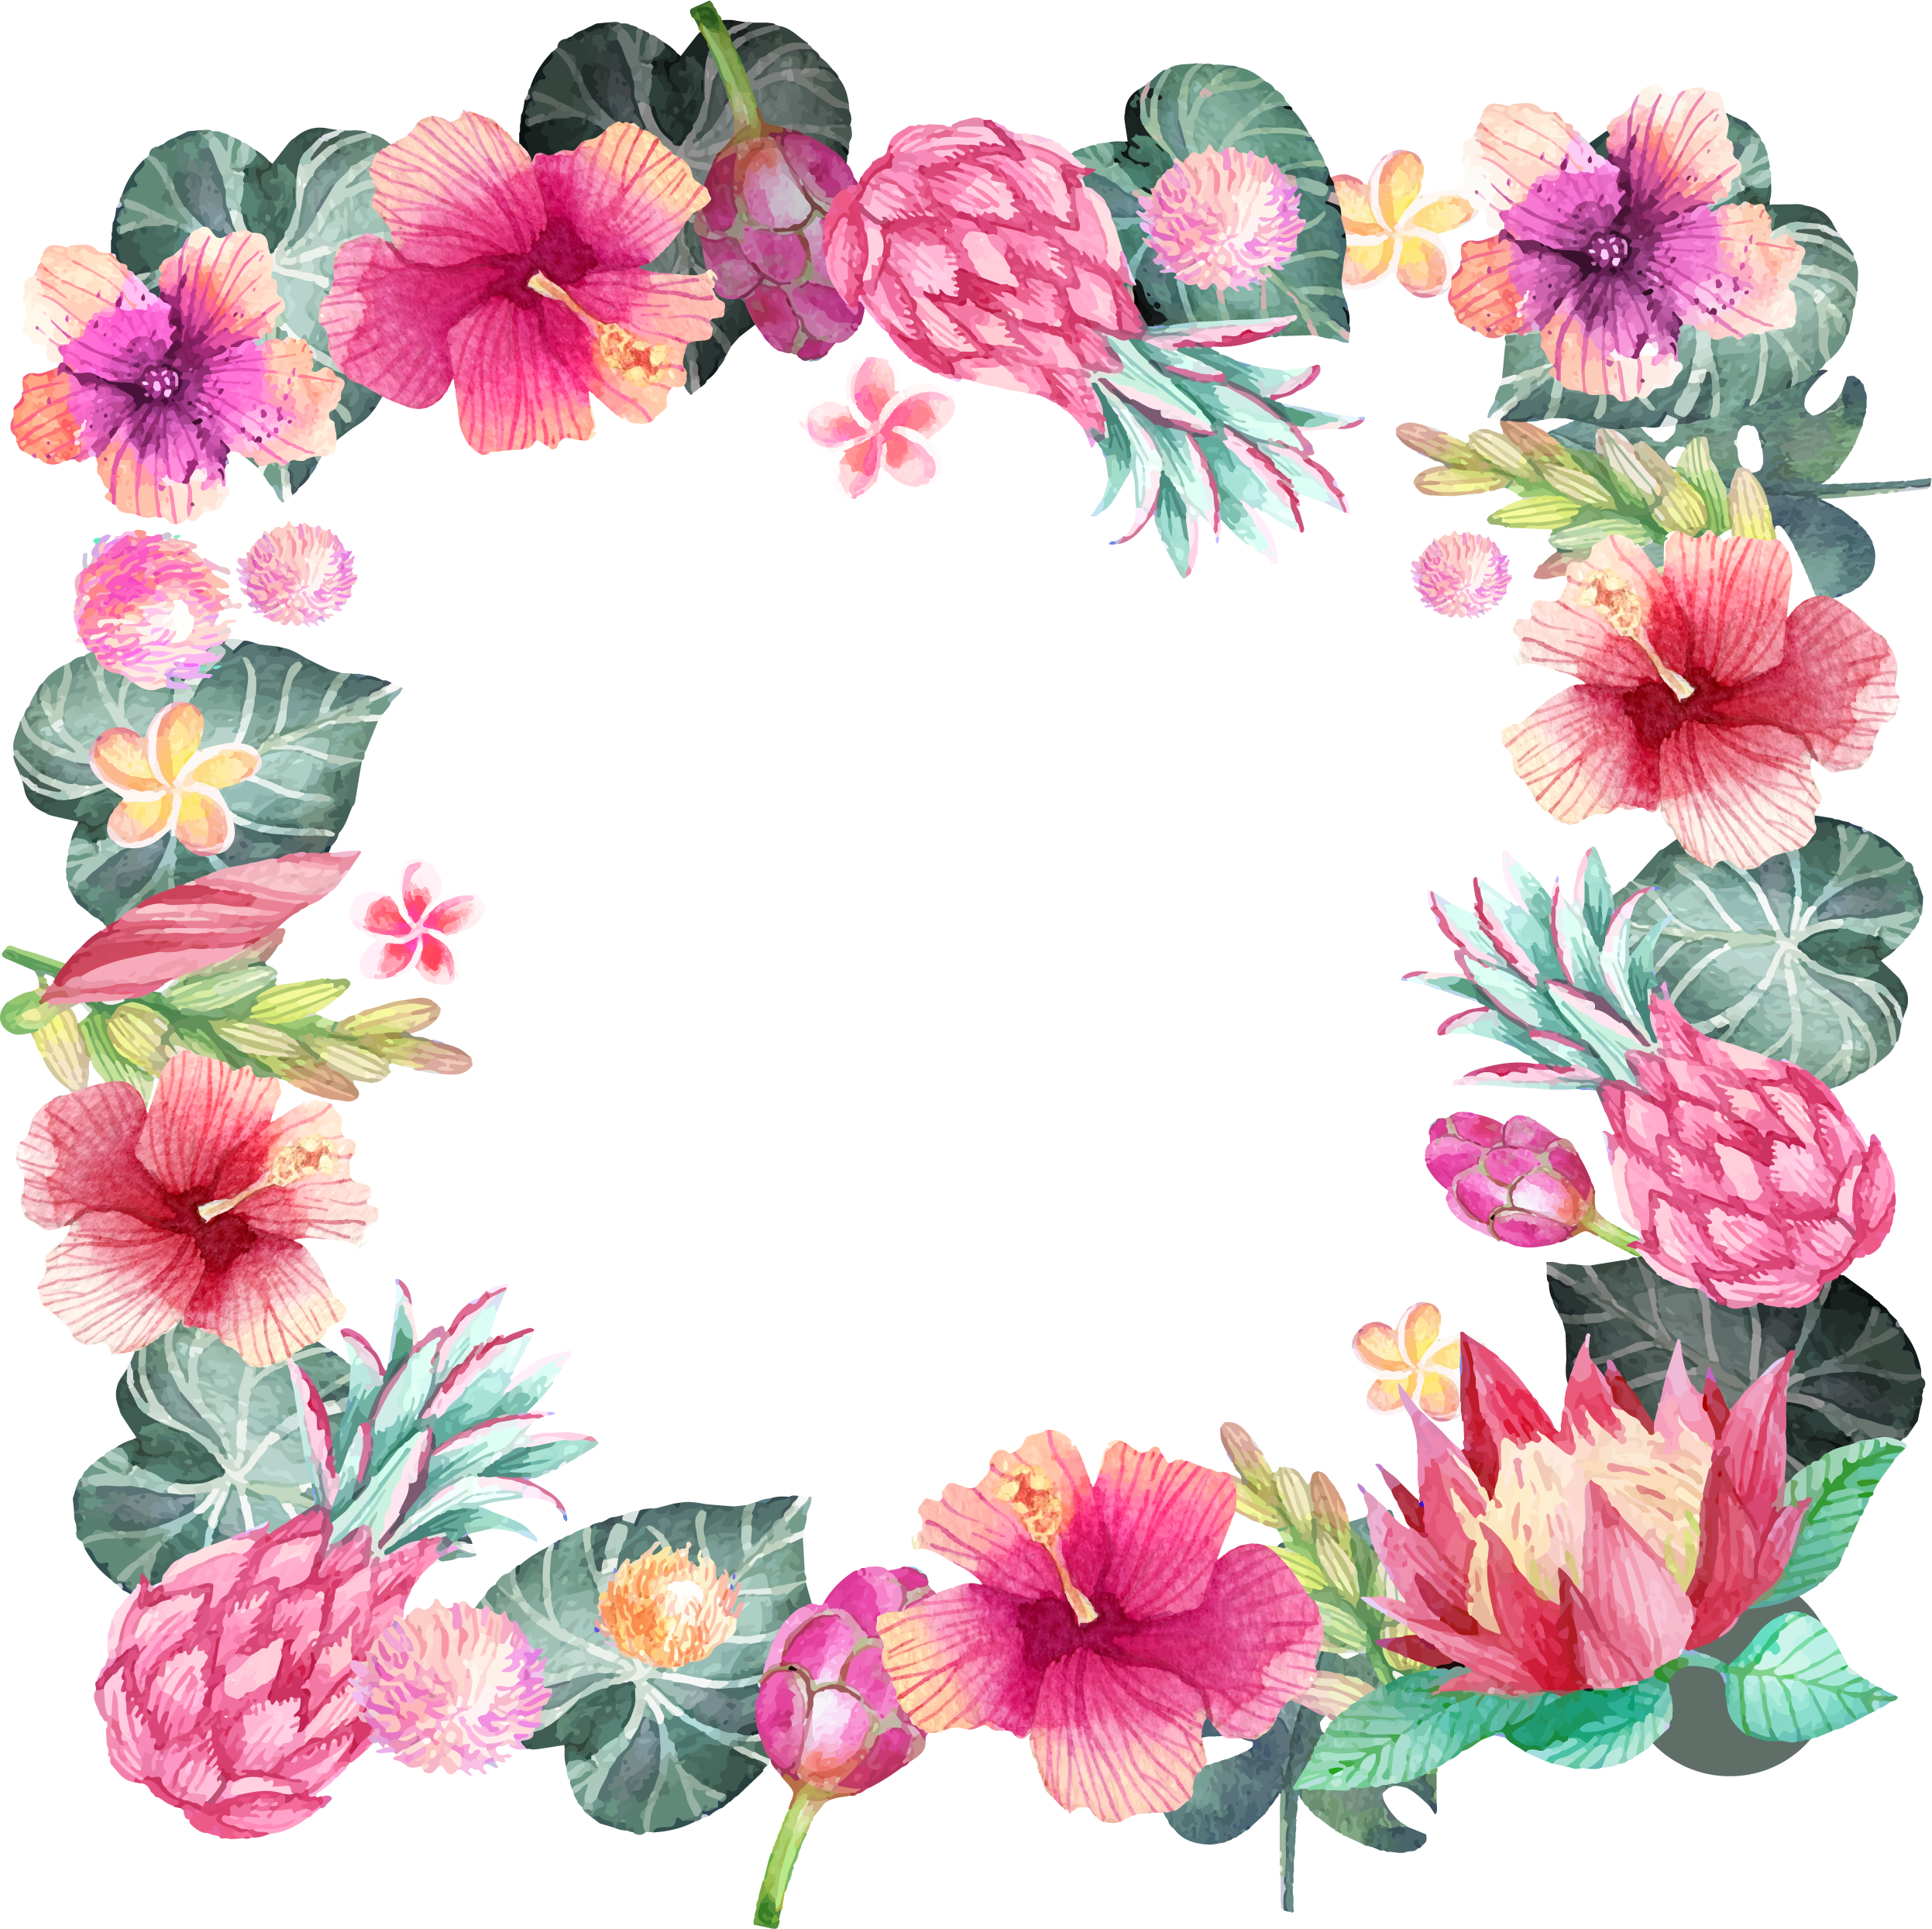 HD Pink Hibiscus Border Png Transparent PNG Image Download.